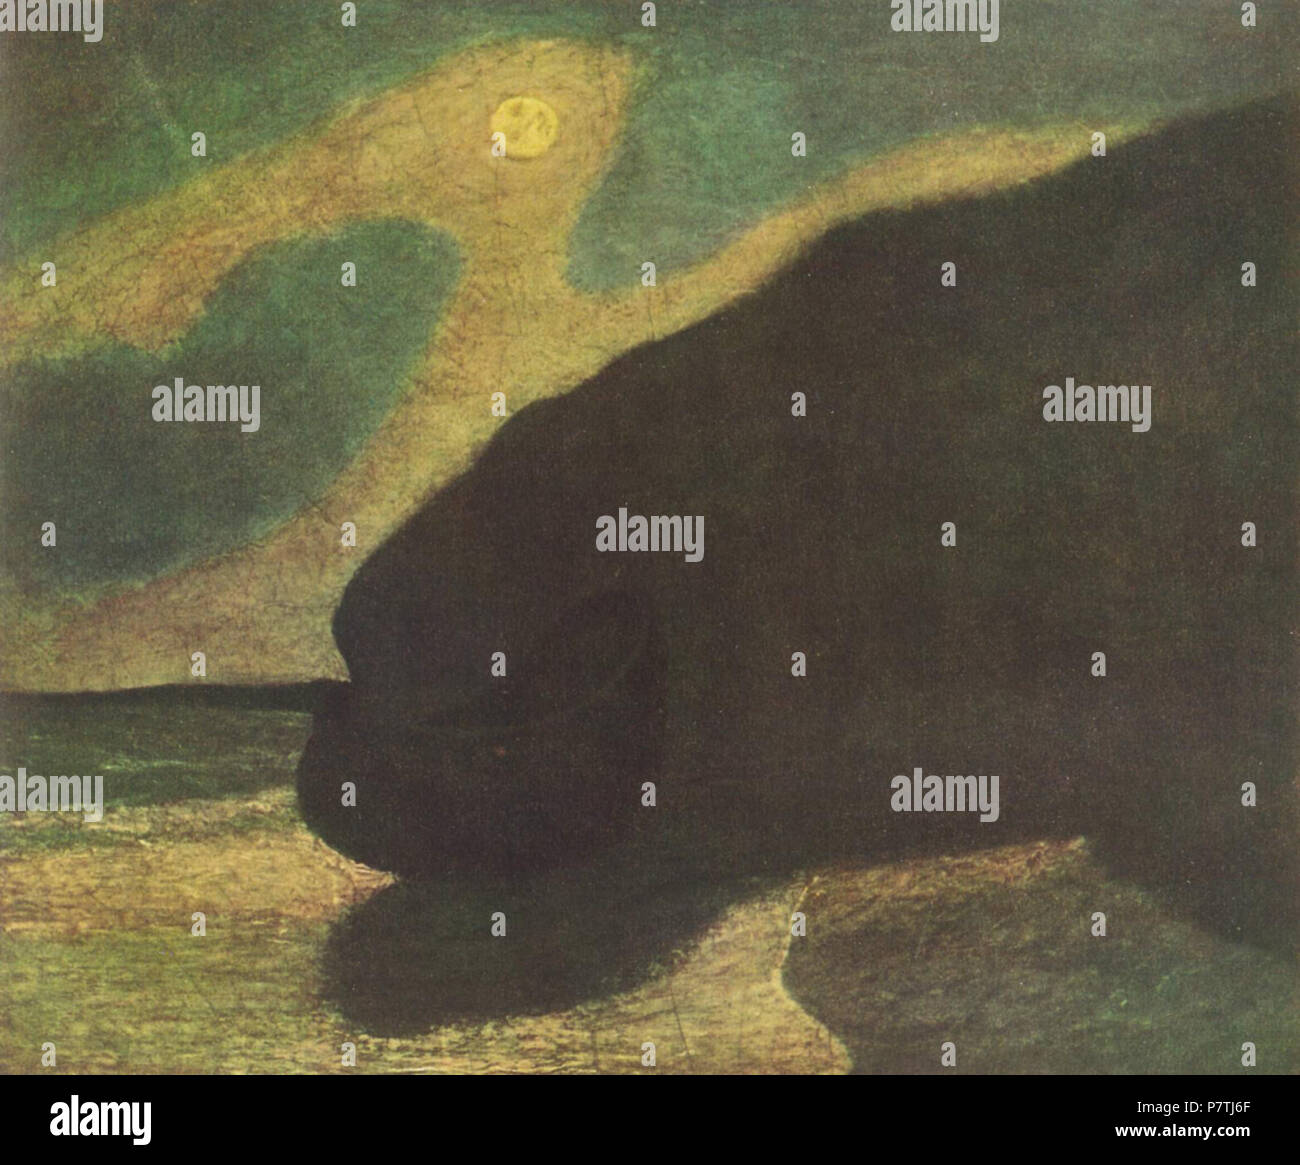 . English: Seeküste im Mondlicht ca. 1890 16 Albert Pinkham Ryder003 Stockbild